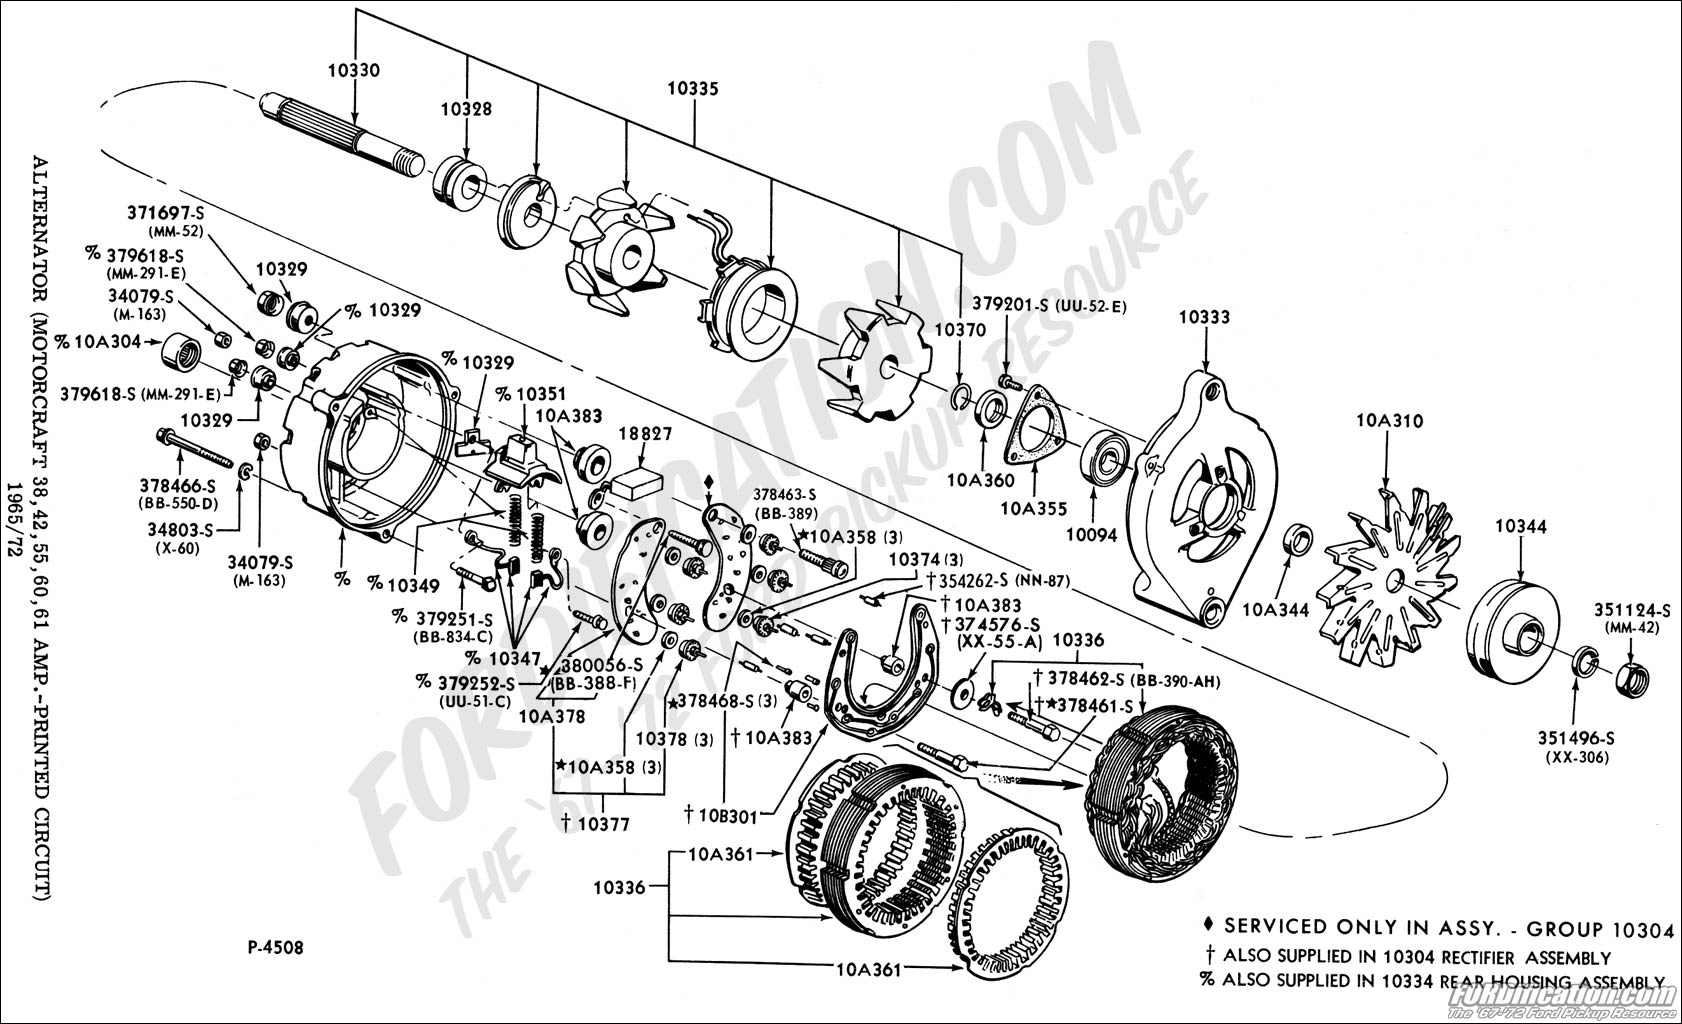 Ford Truck Technical Drawings and Schematics - Section I ... on ford f150 wiring diagram, 1971 ford f100 power steering, 1946 ford truck wiring diagram, 1971 ford f100 carburetor, 1970 ford wiring diagram, 1971 ford f100 tires, 1992 chevy silverado 1500 wiring diagram, 1971 ford f100 parts, ford 800 wiring diagram, basic ford solenoid wiring diagram, 1971 ford f100 specifications, 1971 ford f100 4x4, 1971 chevrolet camaro wiring diagram, 1971 chevy nova wiring diagram, 1955 ford wiring diagram, 1971 oldsmobile cutlass wiring diagram, ford f-250 wiring diagram, 1971 chevrolet el camino wiring diagram, 1971 ford f100 engine, 1966 ford wiring diagram,